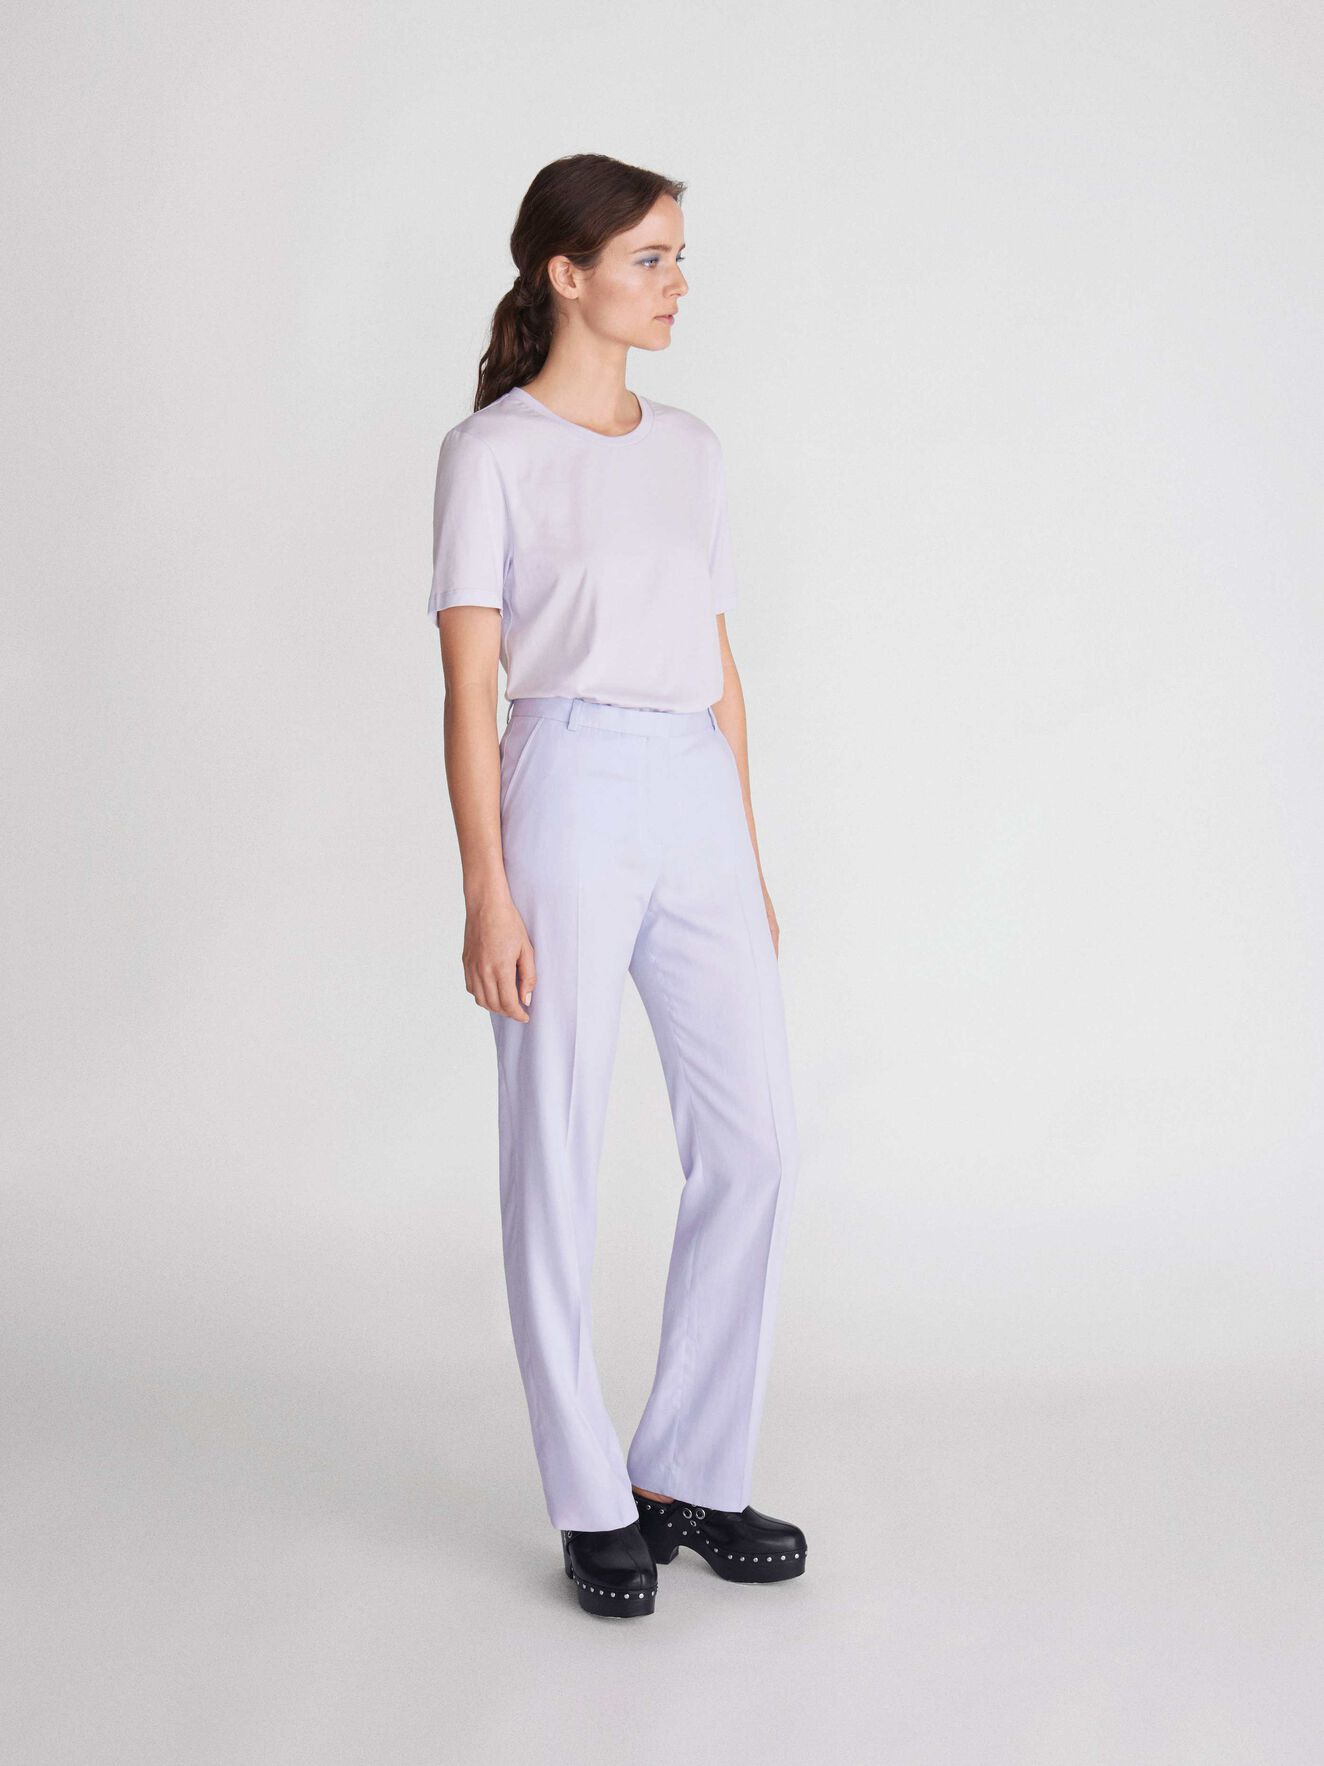 Deira T-Shirt in Soft Lavender from Tiger of Sweden